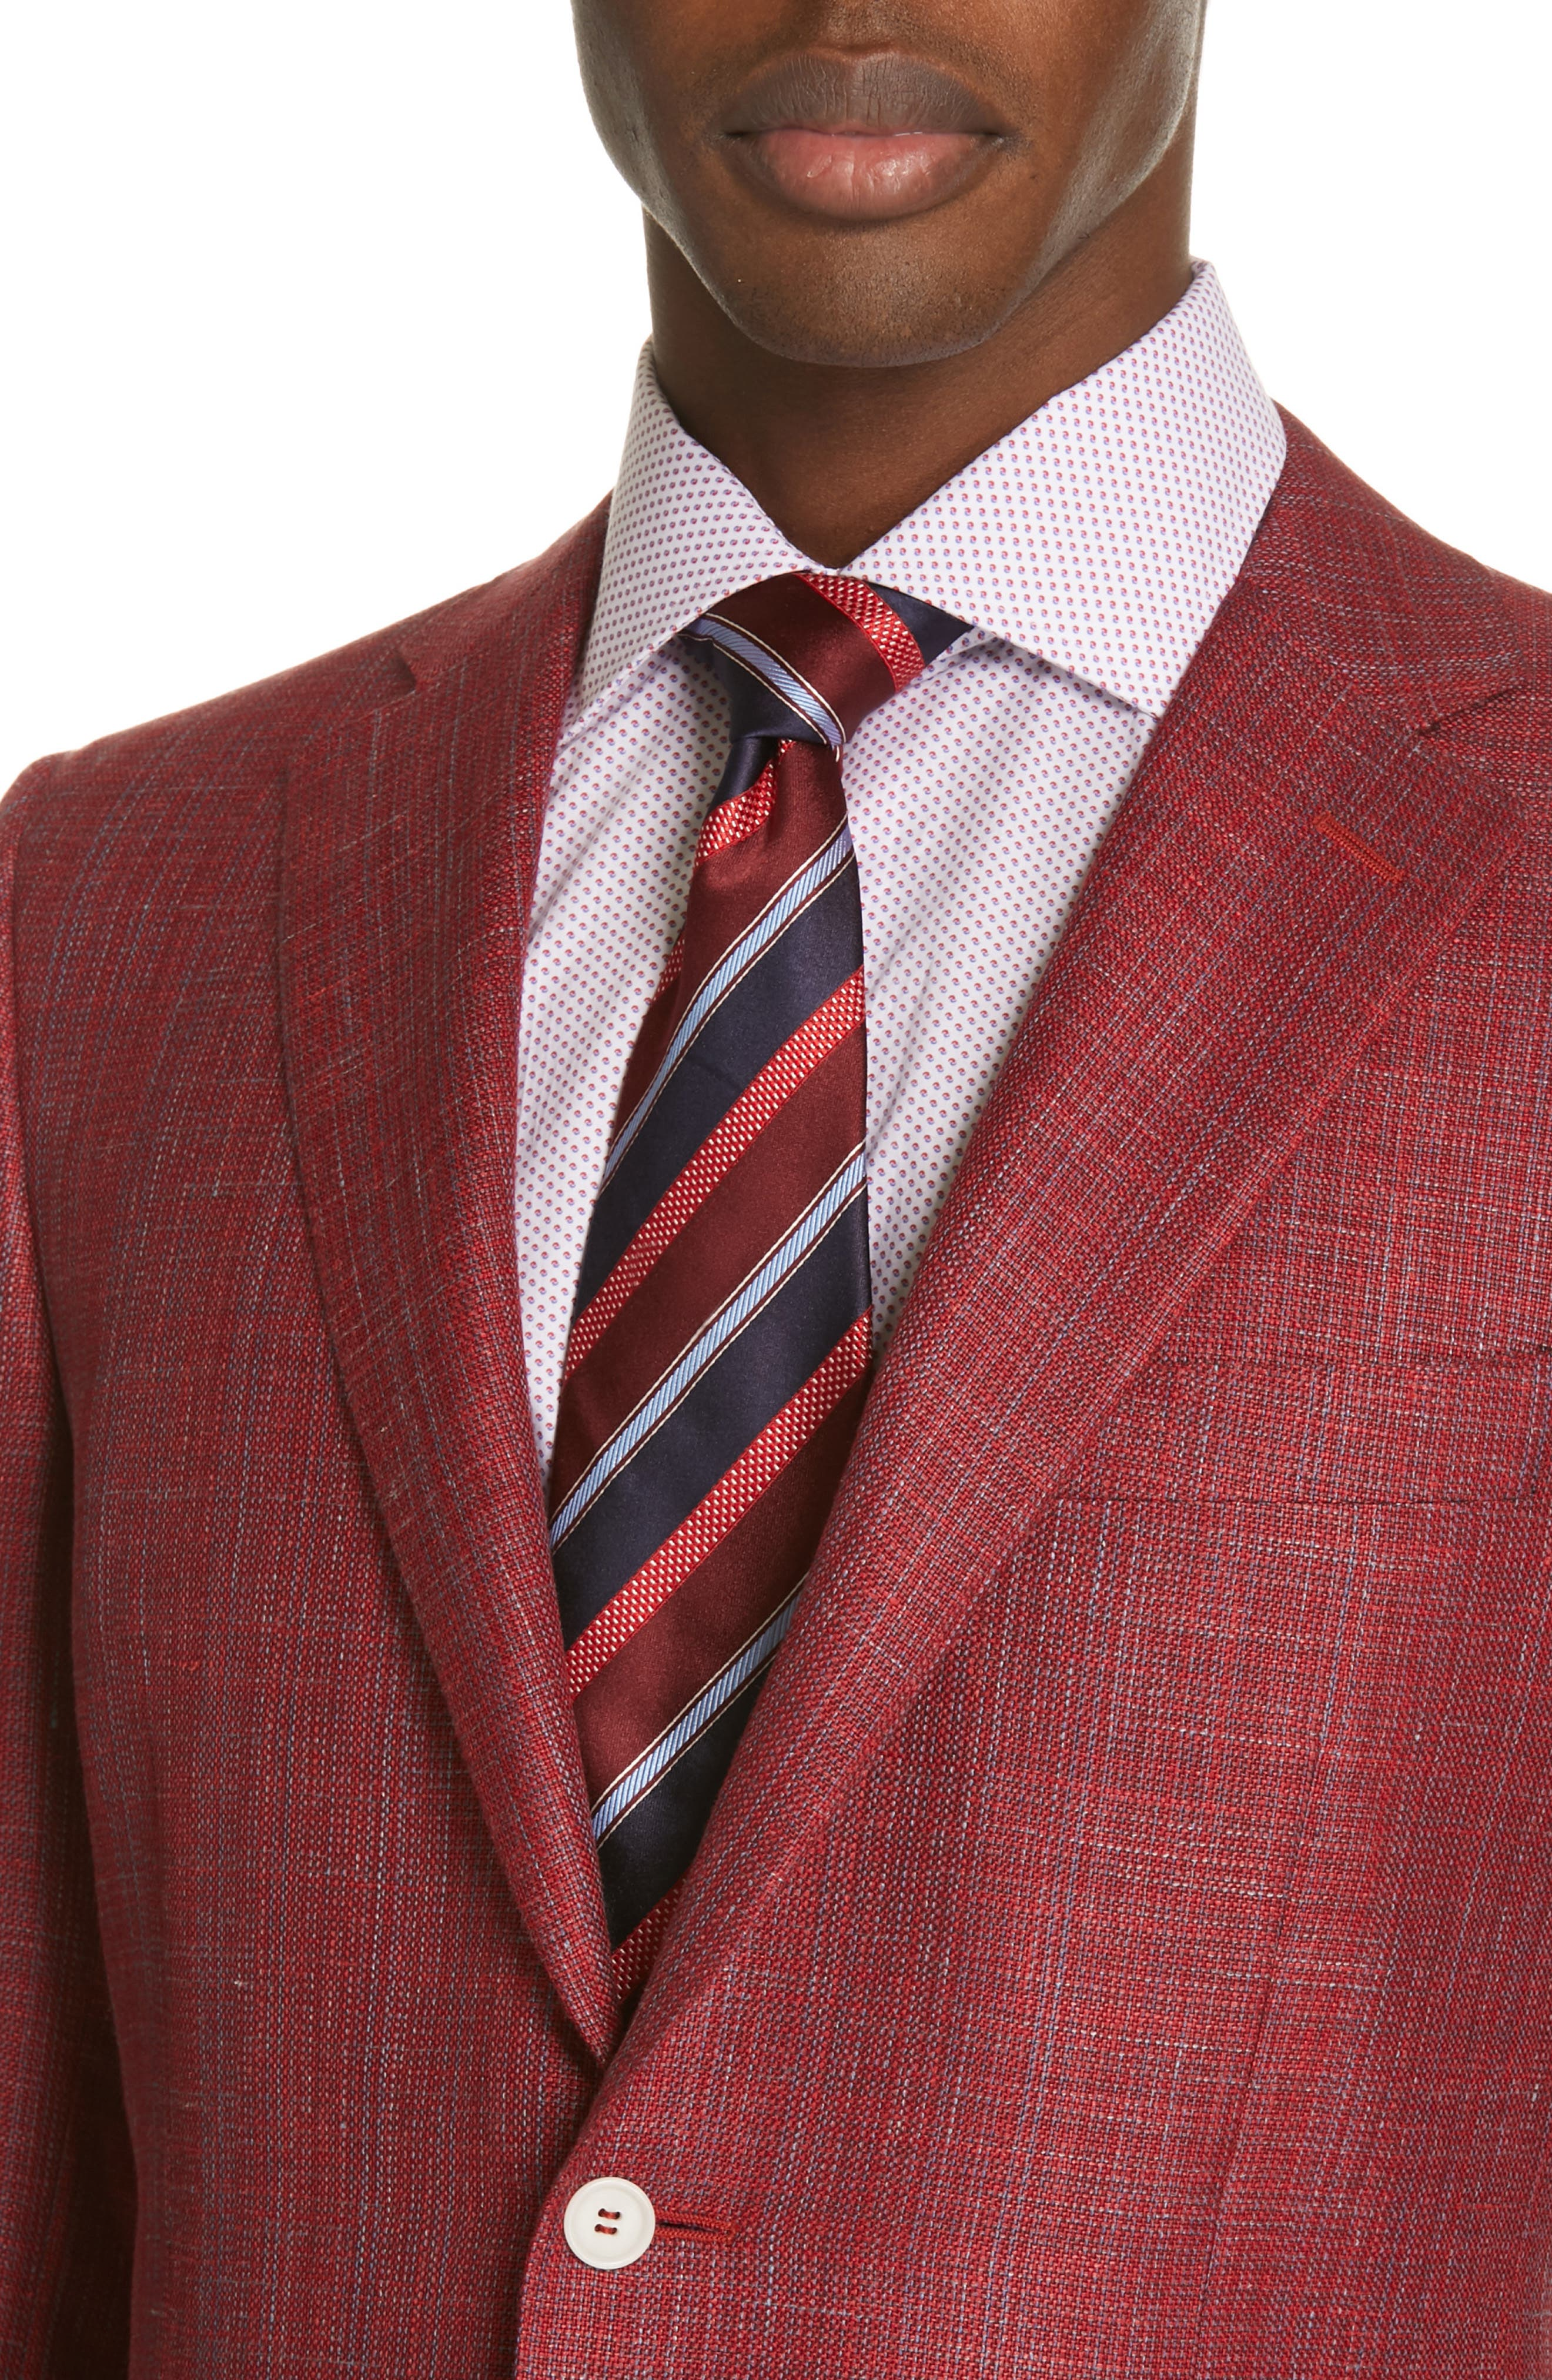 CANALI, Siena Classic Fit Wool, Silk & Linen Blend Sport Coat, Alternate thumbnail 4, color, RED